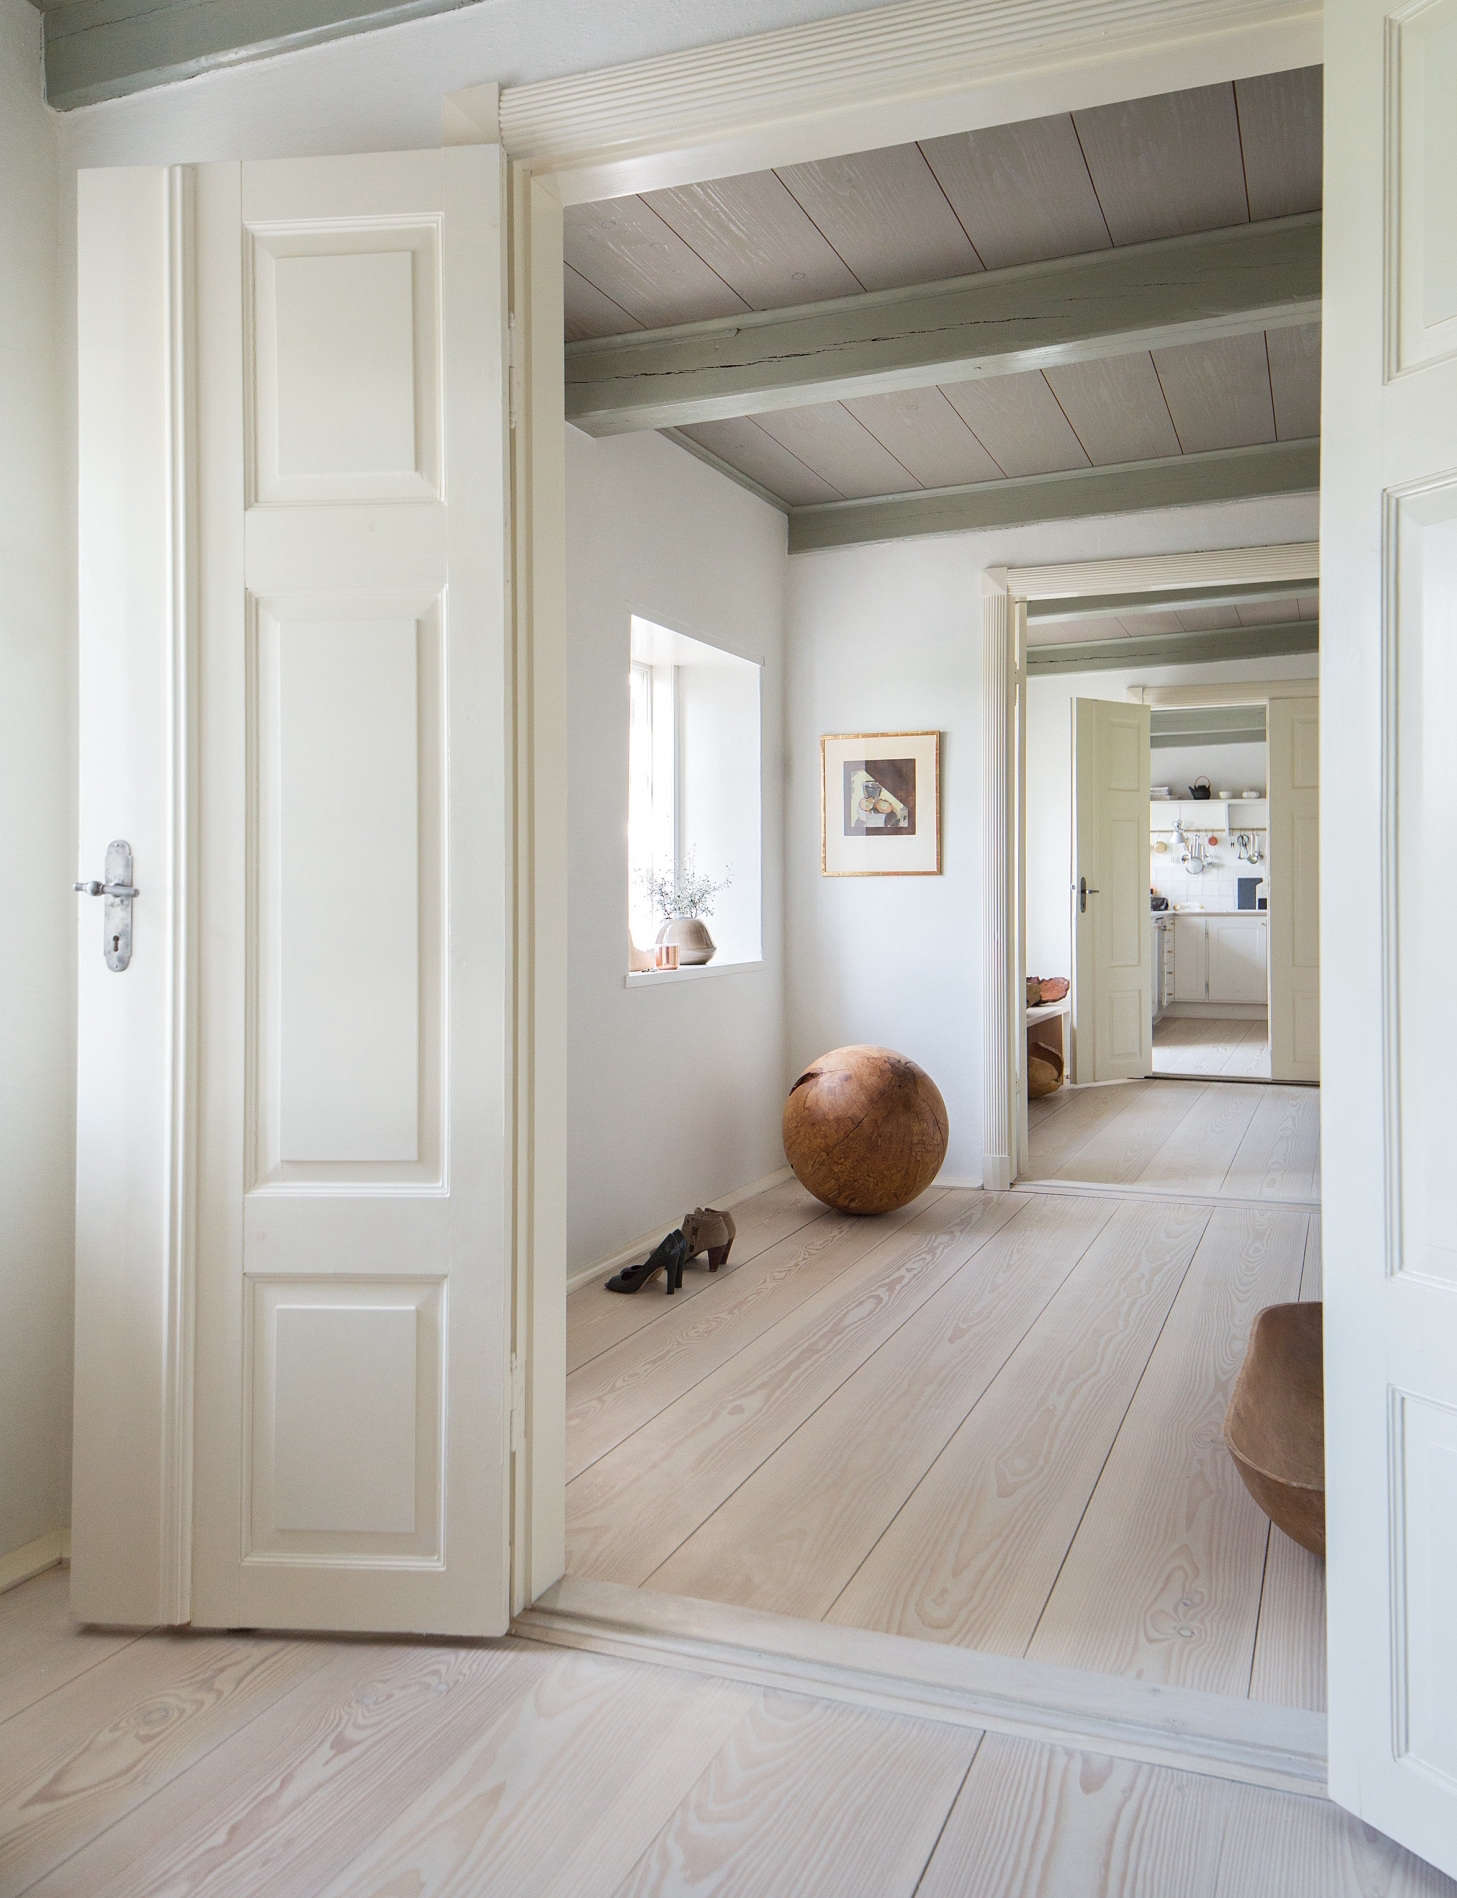 Remodeling 101 A Guide To The Only 6 Wood Flooring Styles You Need Know